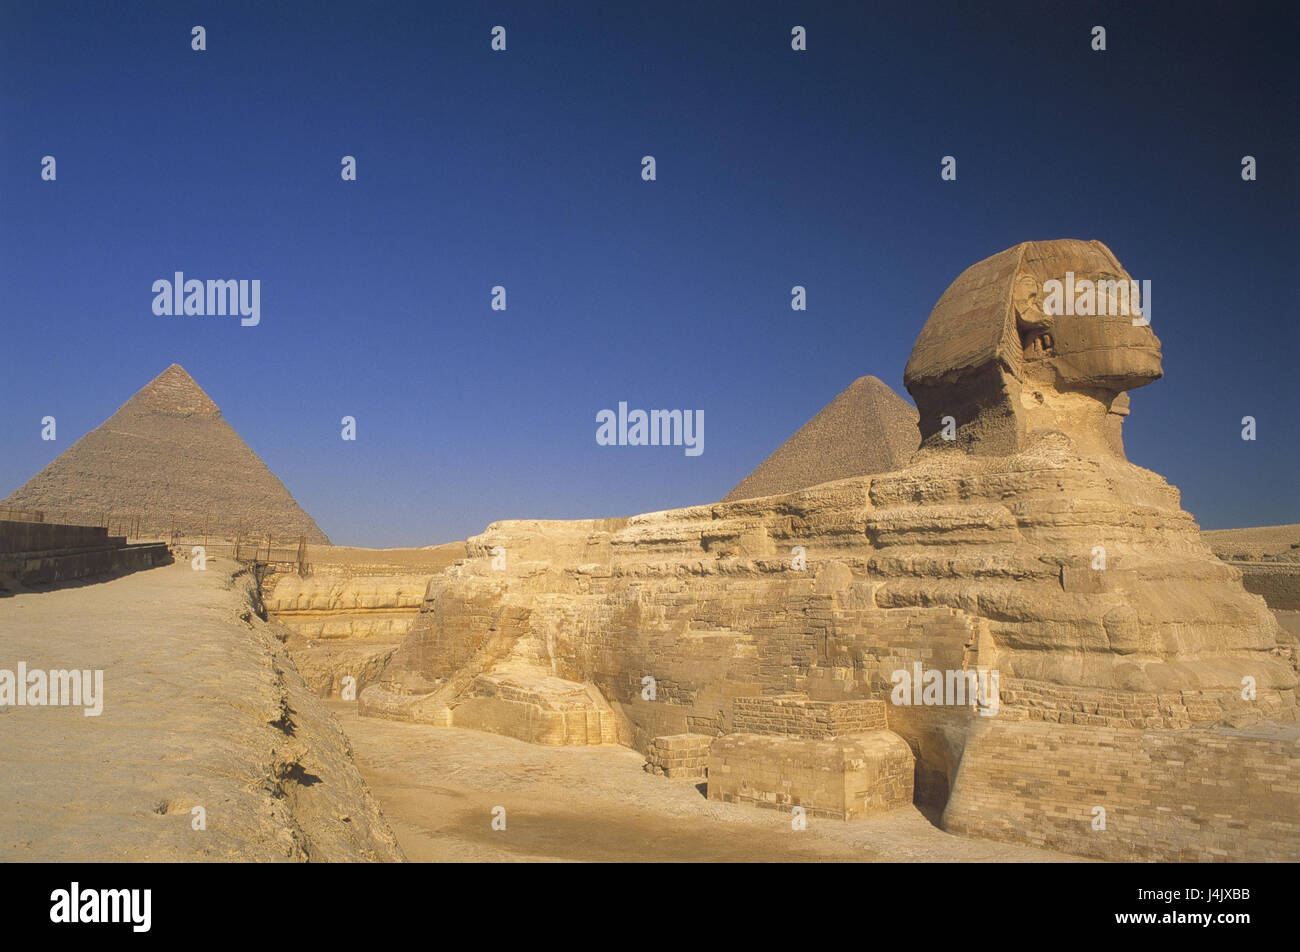 Egypt, Gizeh, pyramids, sphinx outside, Africa, East, Giseh, Gise, Giza, Al-Giza, El-Giseh, pyramid, place of interest, - Stock Image